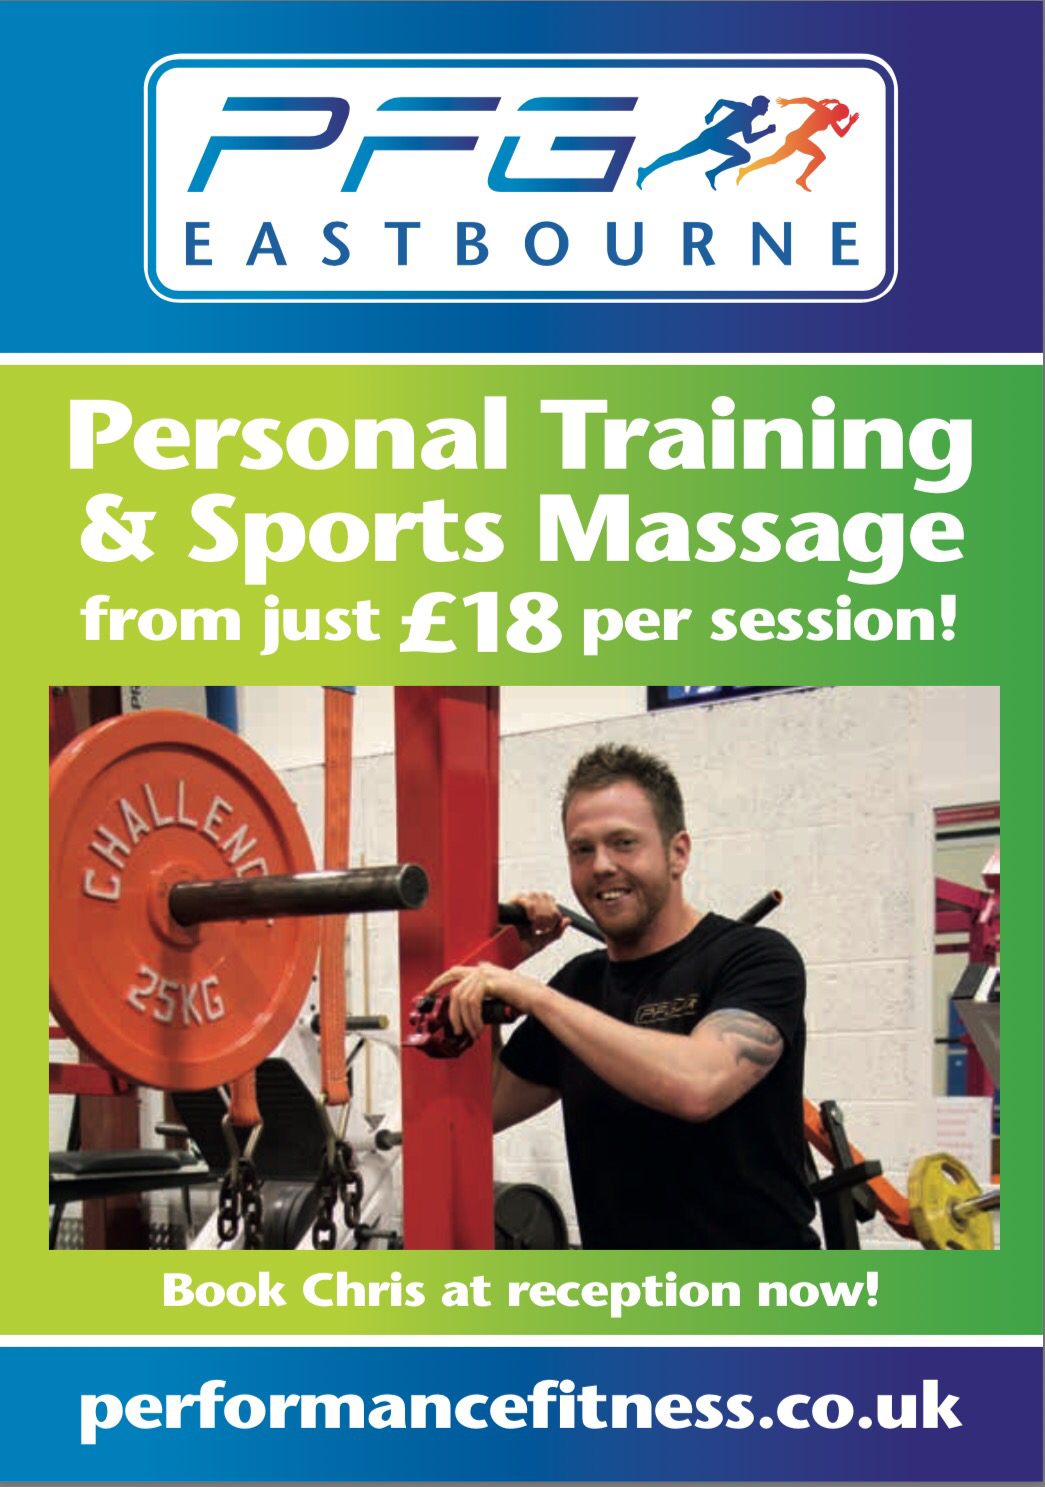 Start 2017 with a helping hand and get some personal training from one of the PFG team